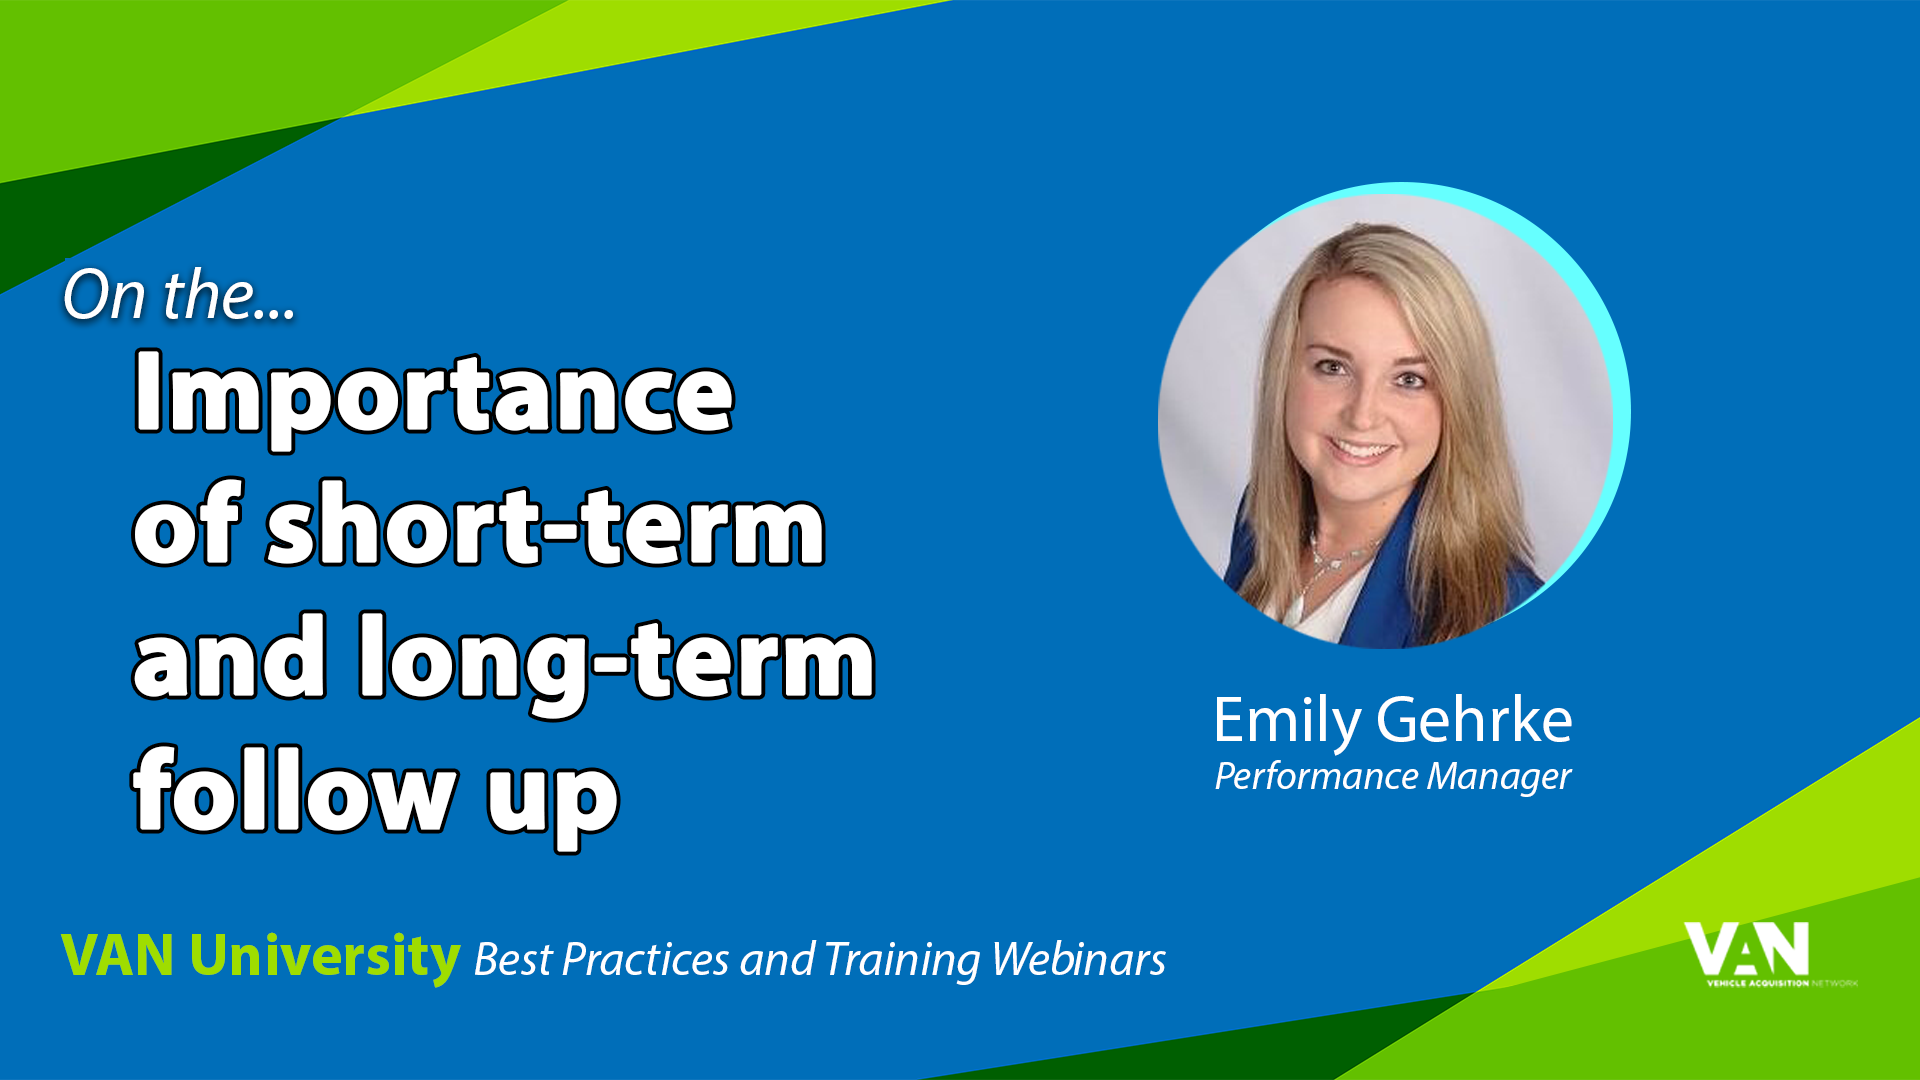 VAN Performance Manager Emily Gehrke on the importance of follow up